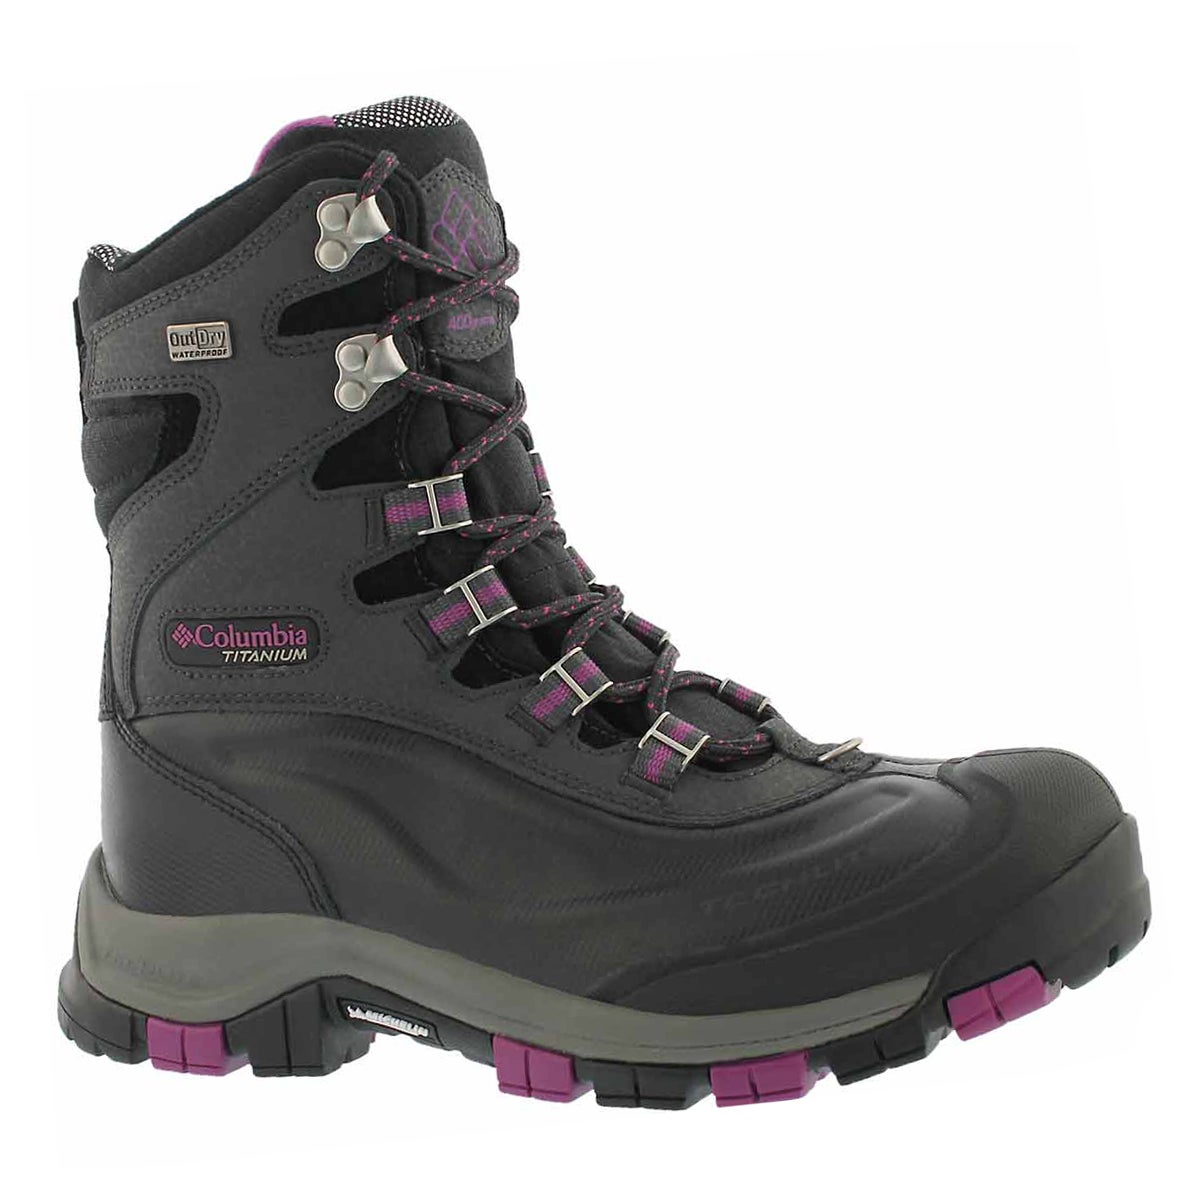 Women's BUGABBOOT PLUS TITANIUM bk wp winter boots